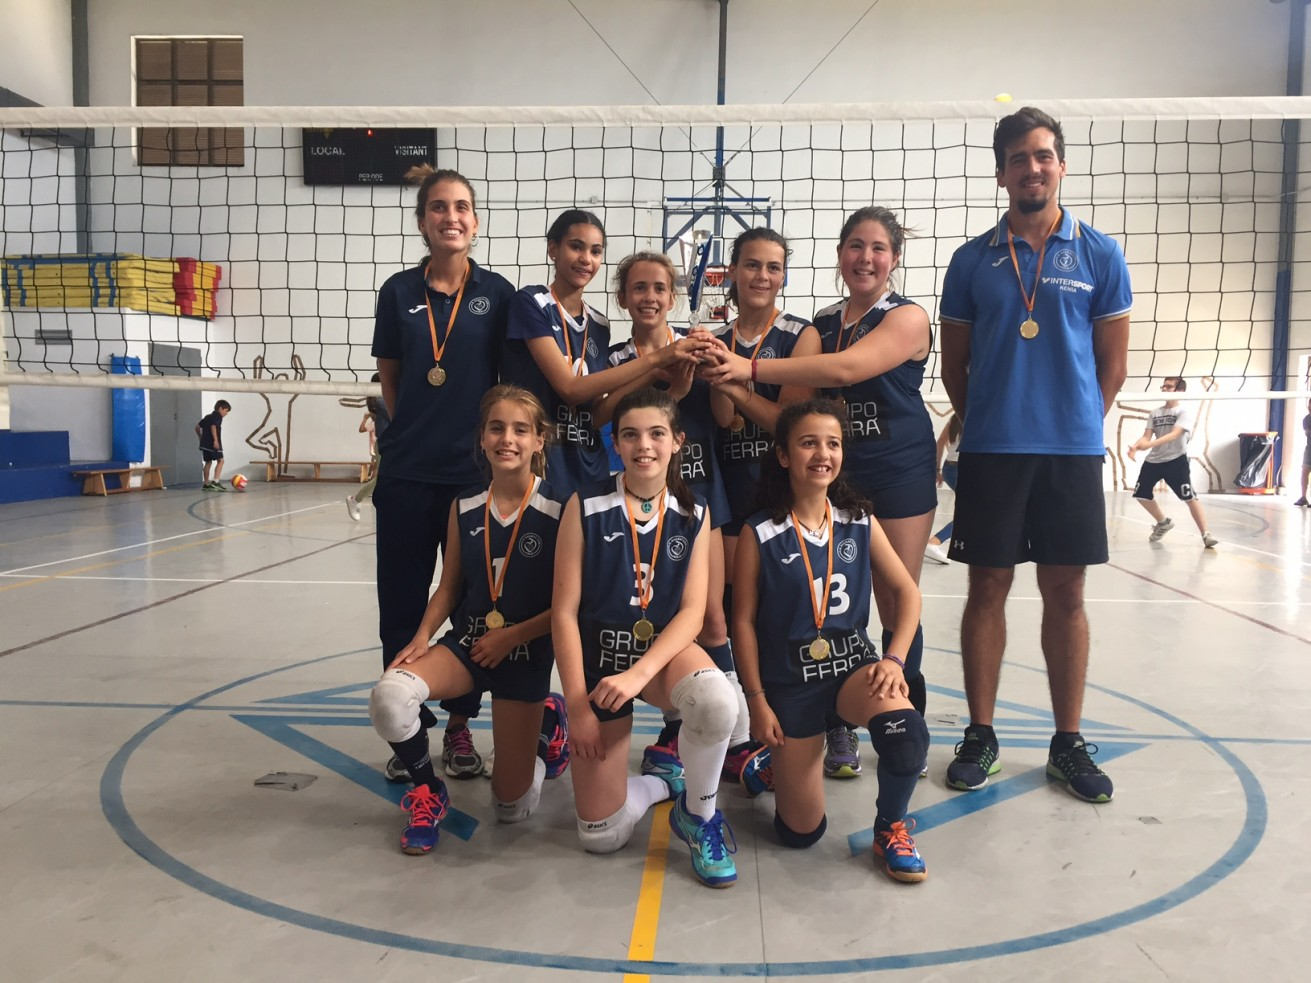 Congratulations to the Grupo Ferrá – Sagrat Cor Female 11-12 years-old Volleyball team